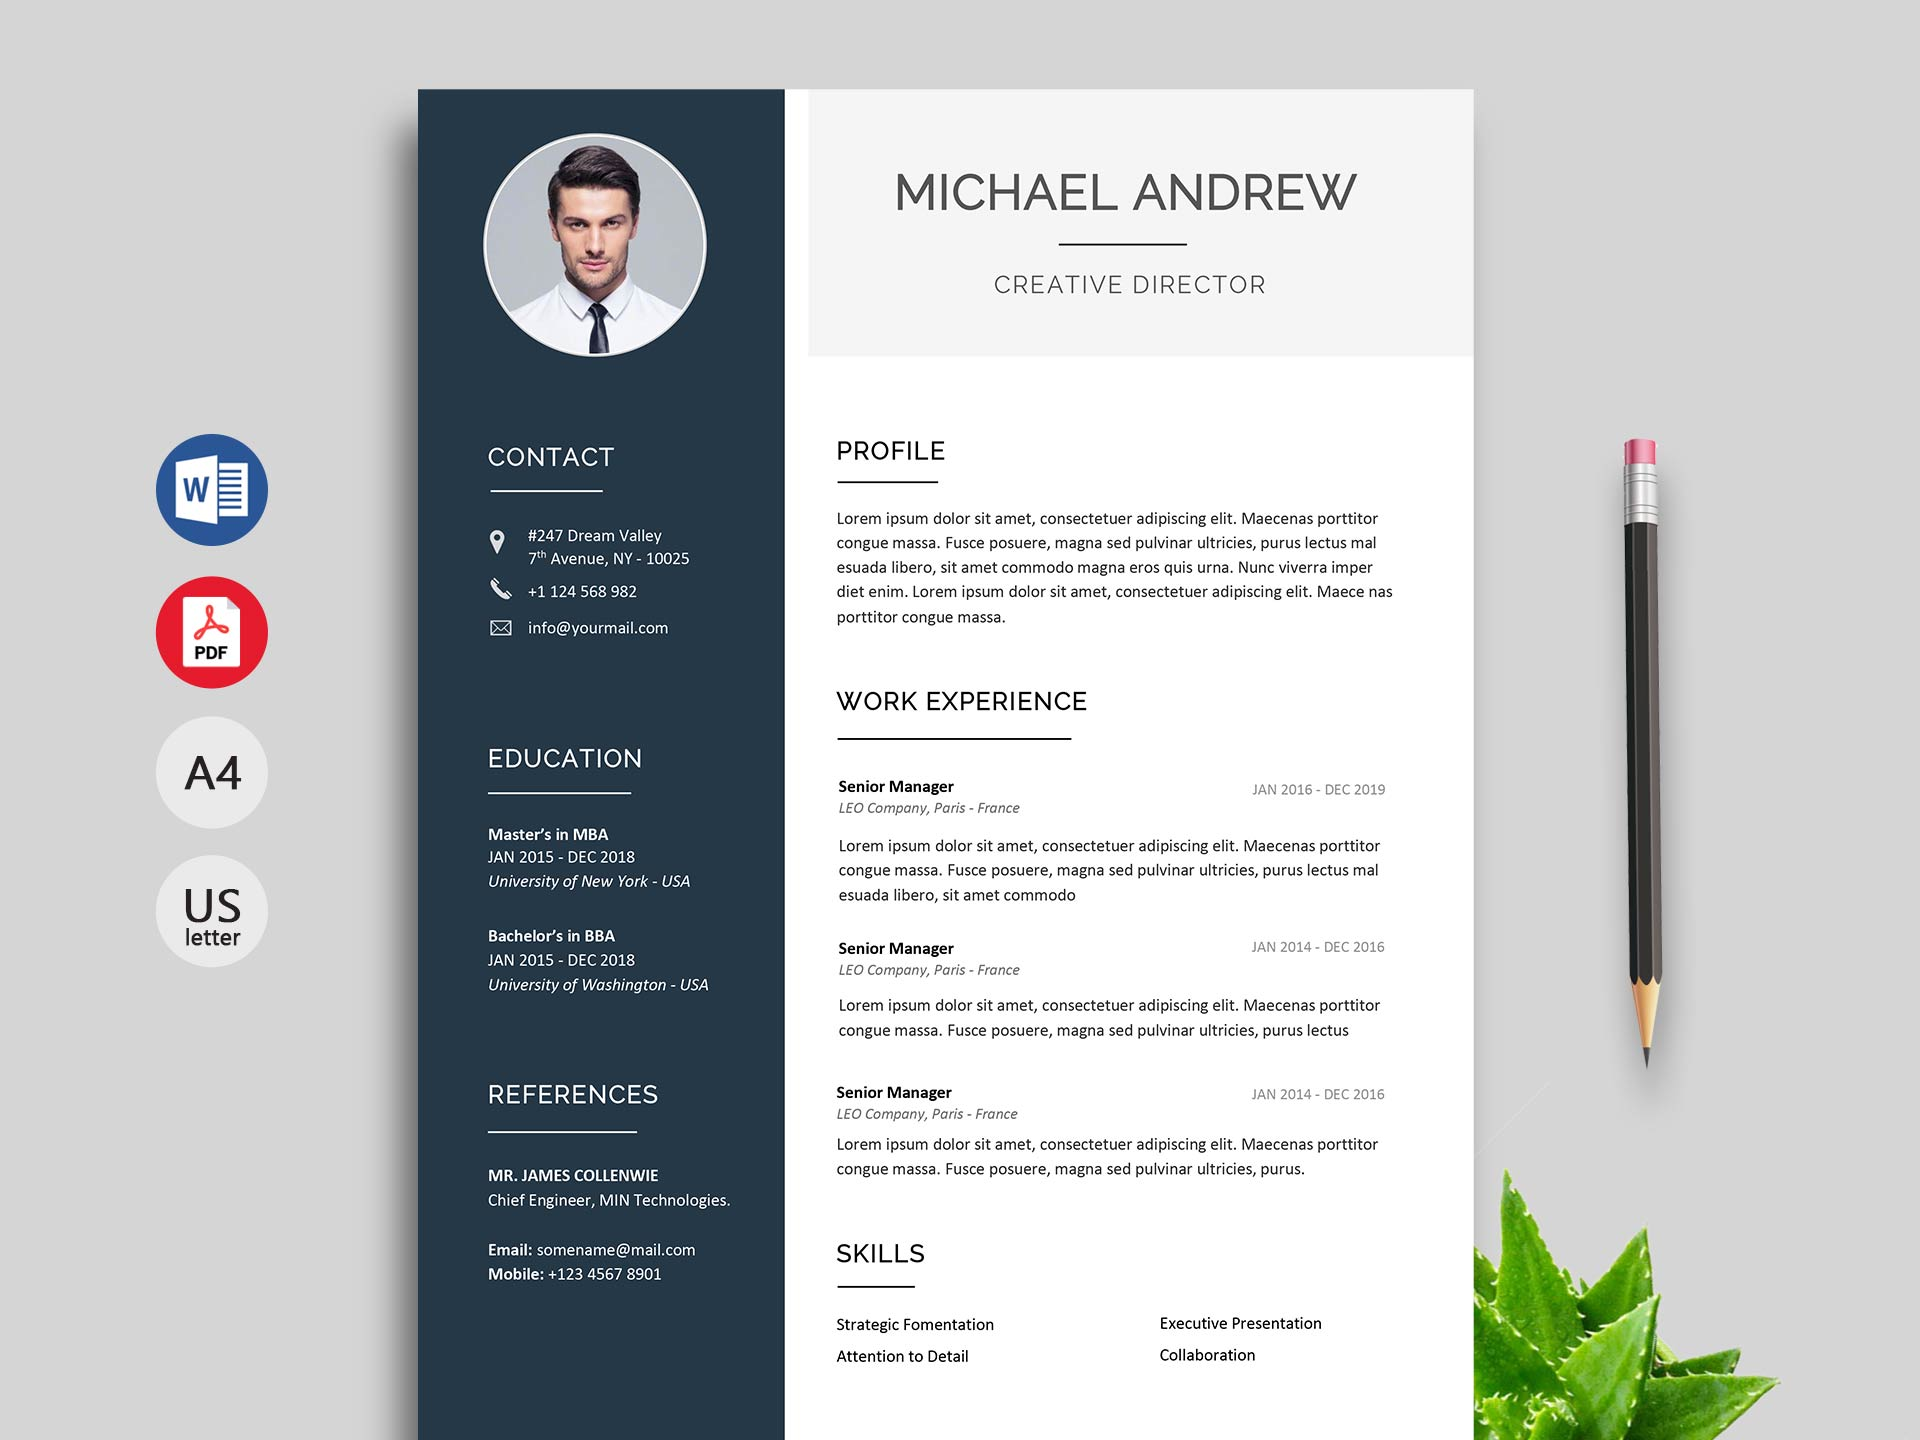 premium archives resumekraft word resume template prime dental hygienist hireit oracle Resume Word Resume Template 2020